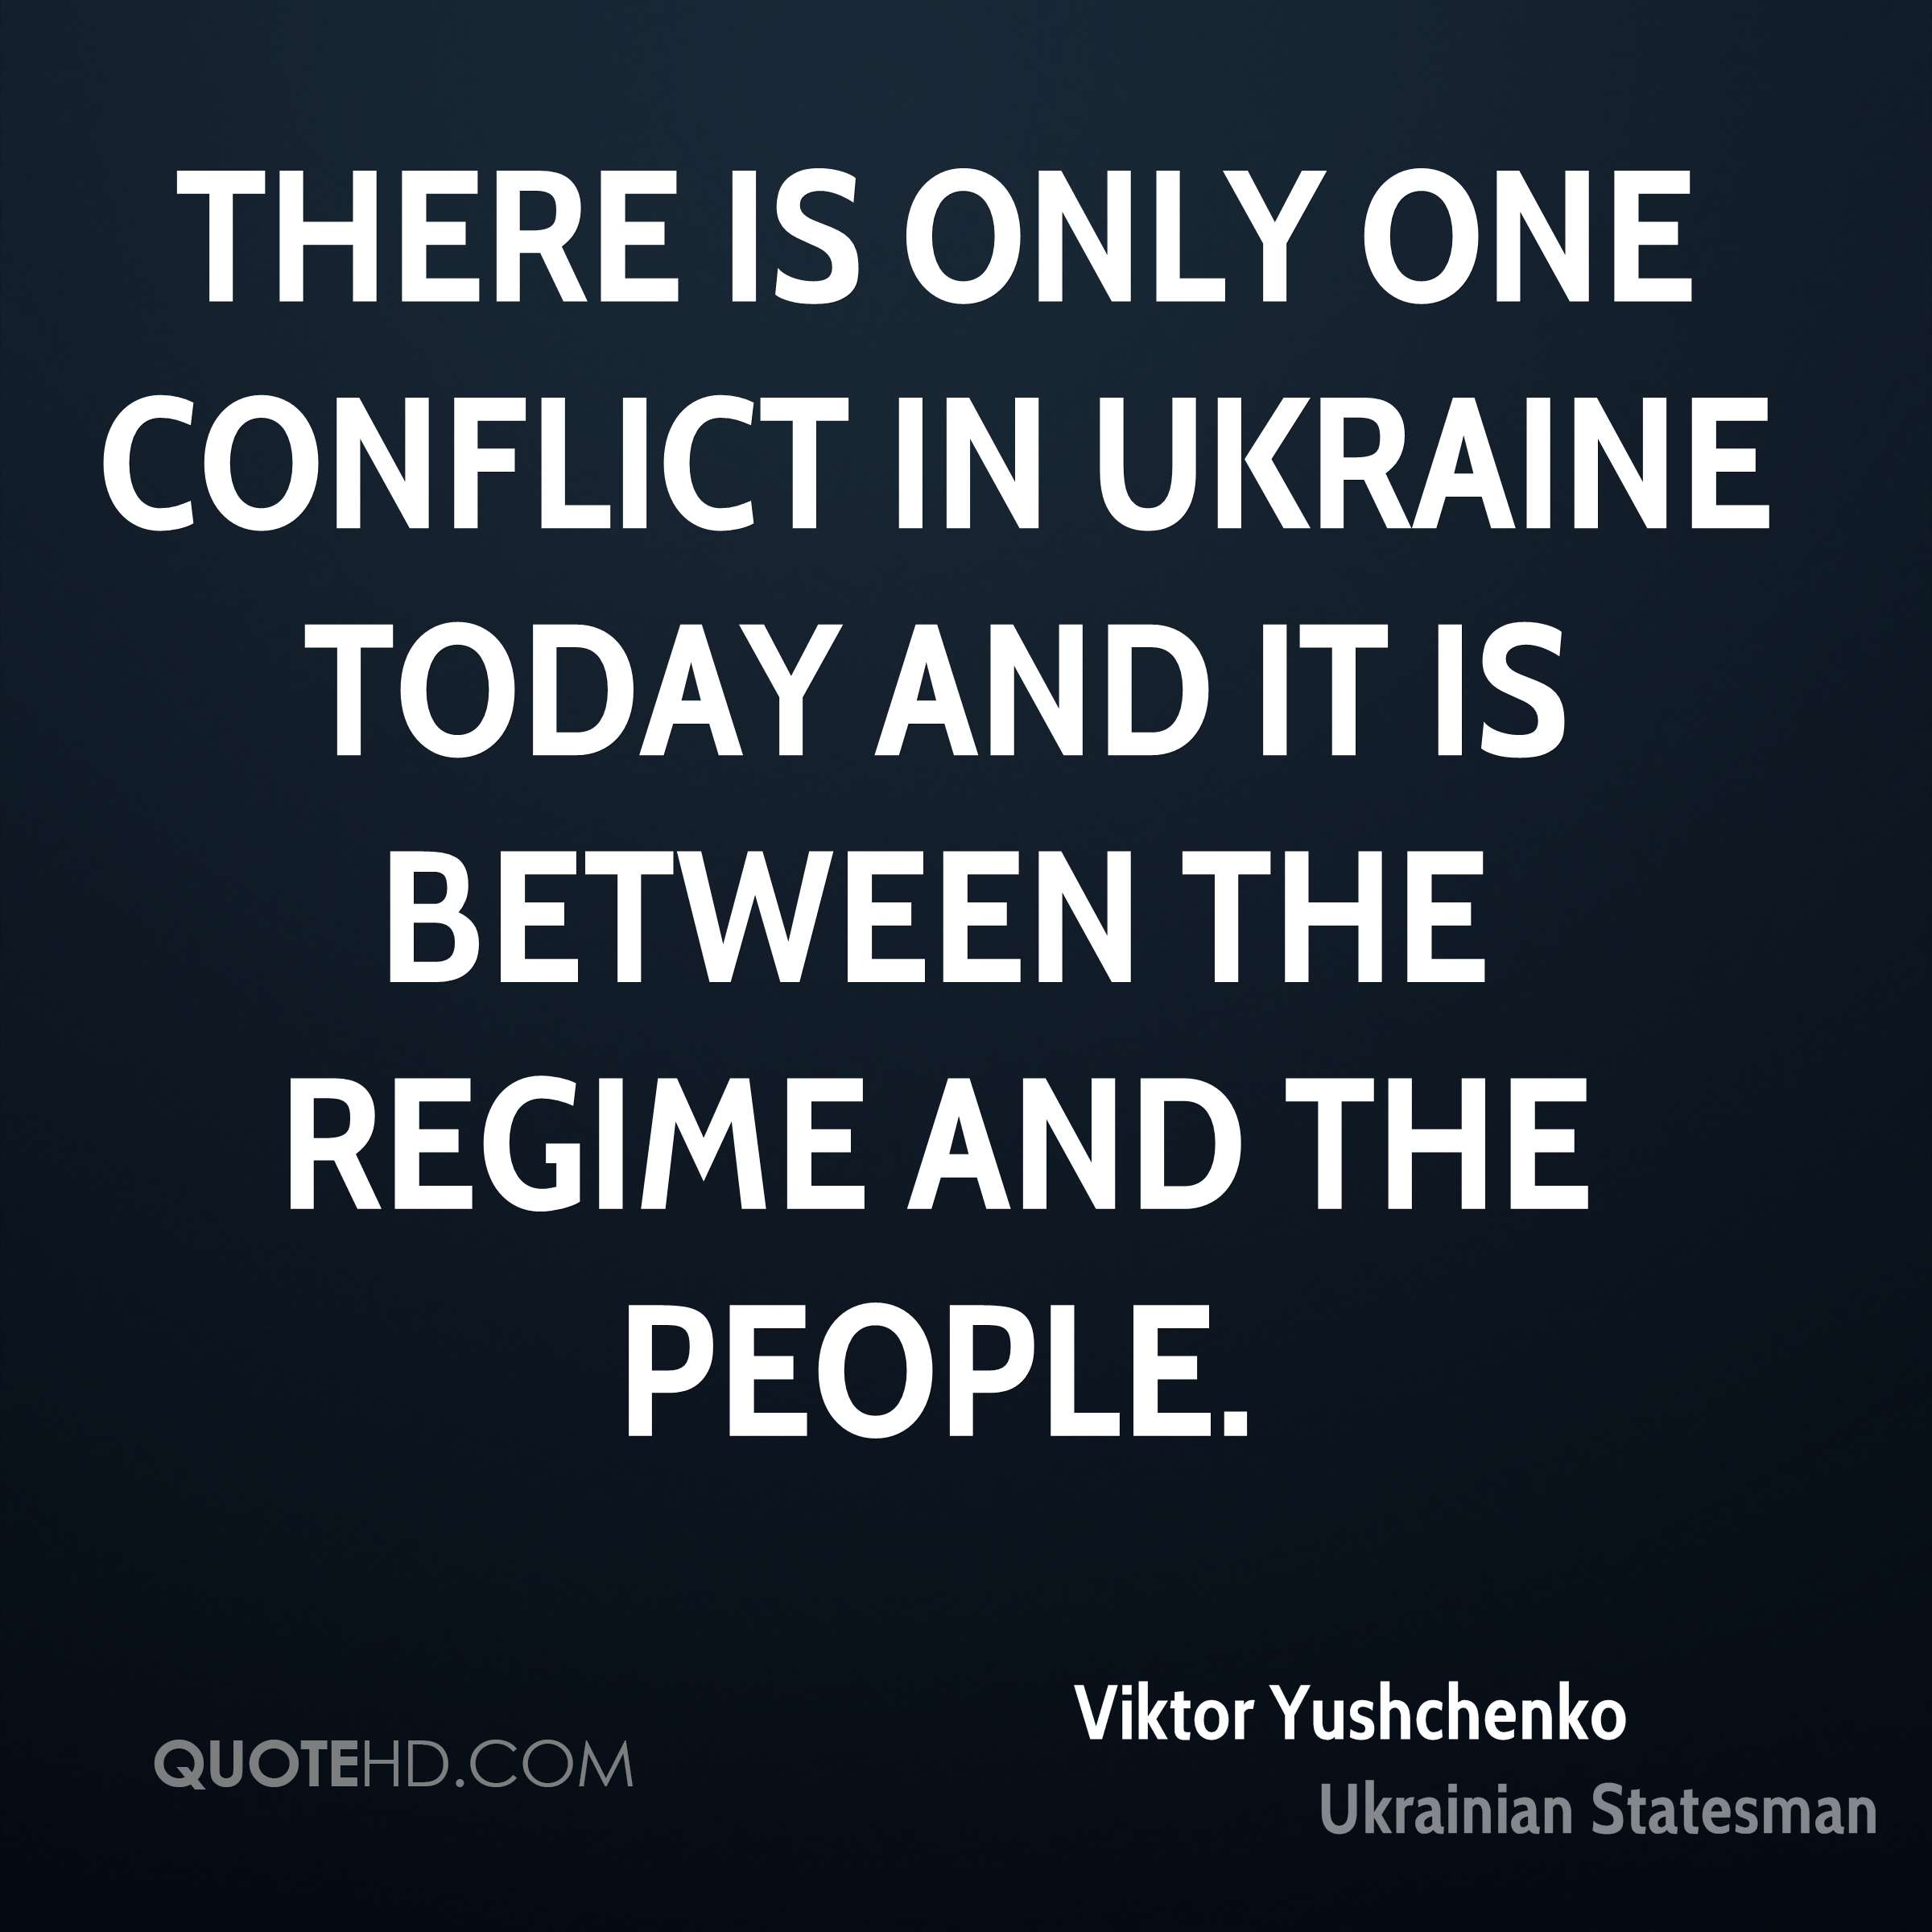 There is only one conflict in Ukraine today and it is between the regime and the people.